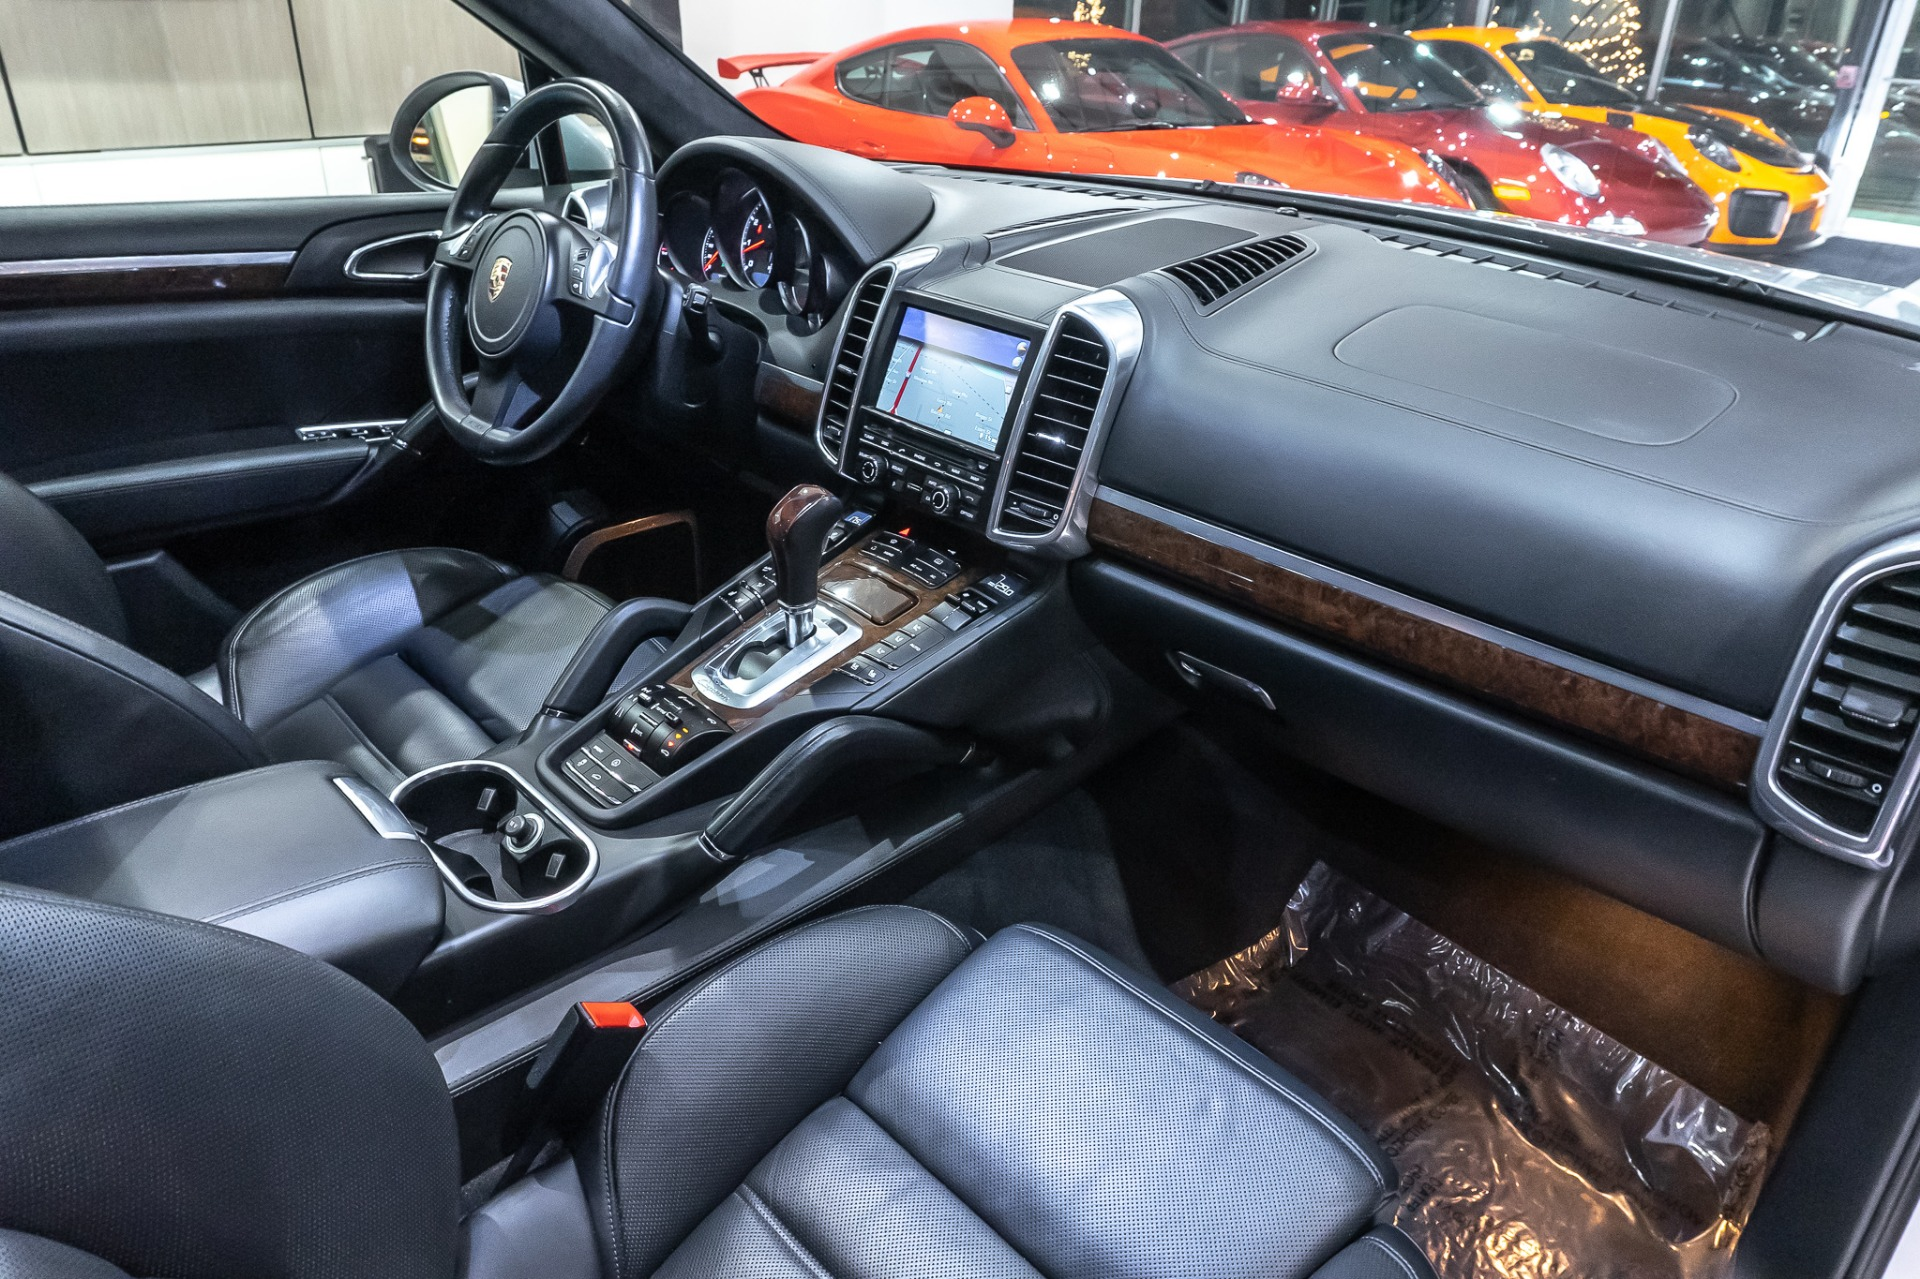 Used 2011 Porsche Cayenne Turbo 115k Msrp For Sale Special Pricing Chicago Motor Cars Stock 16100